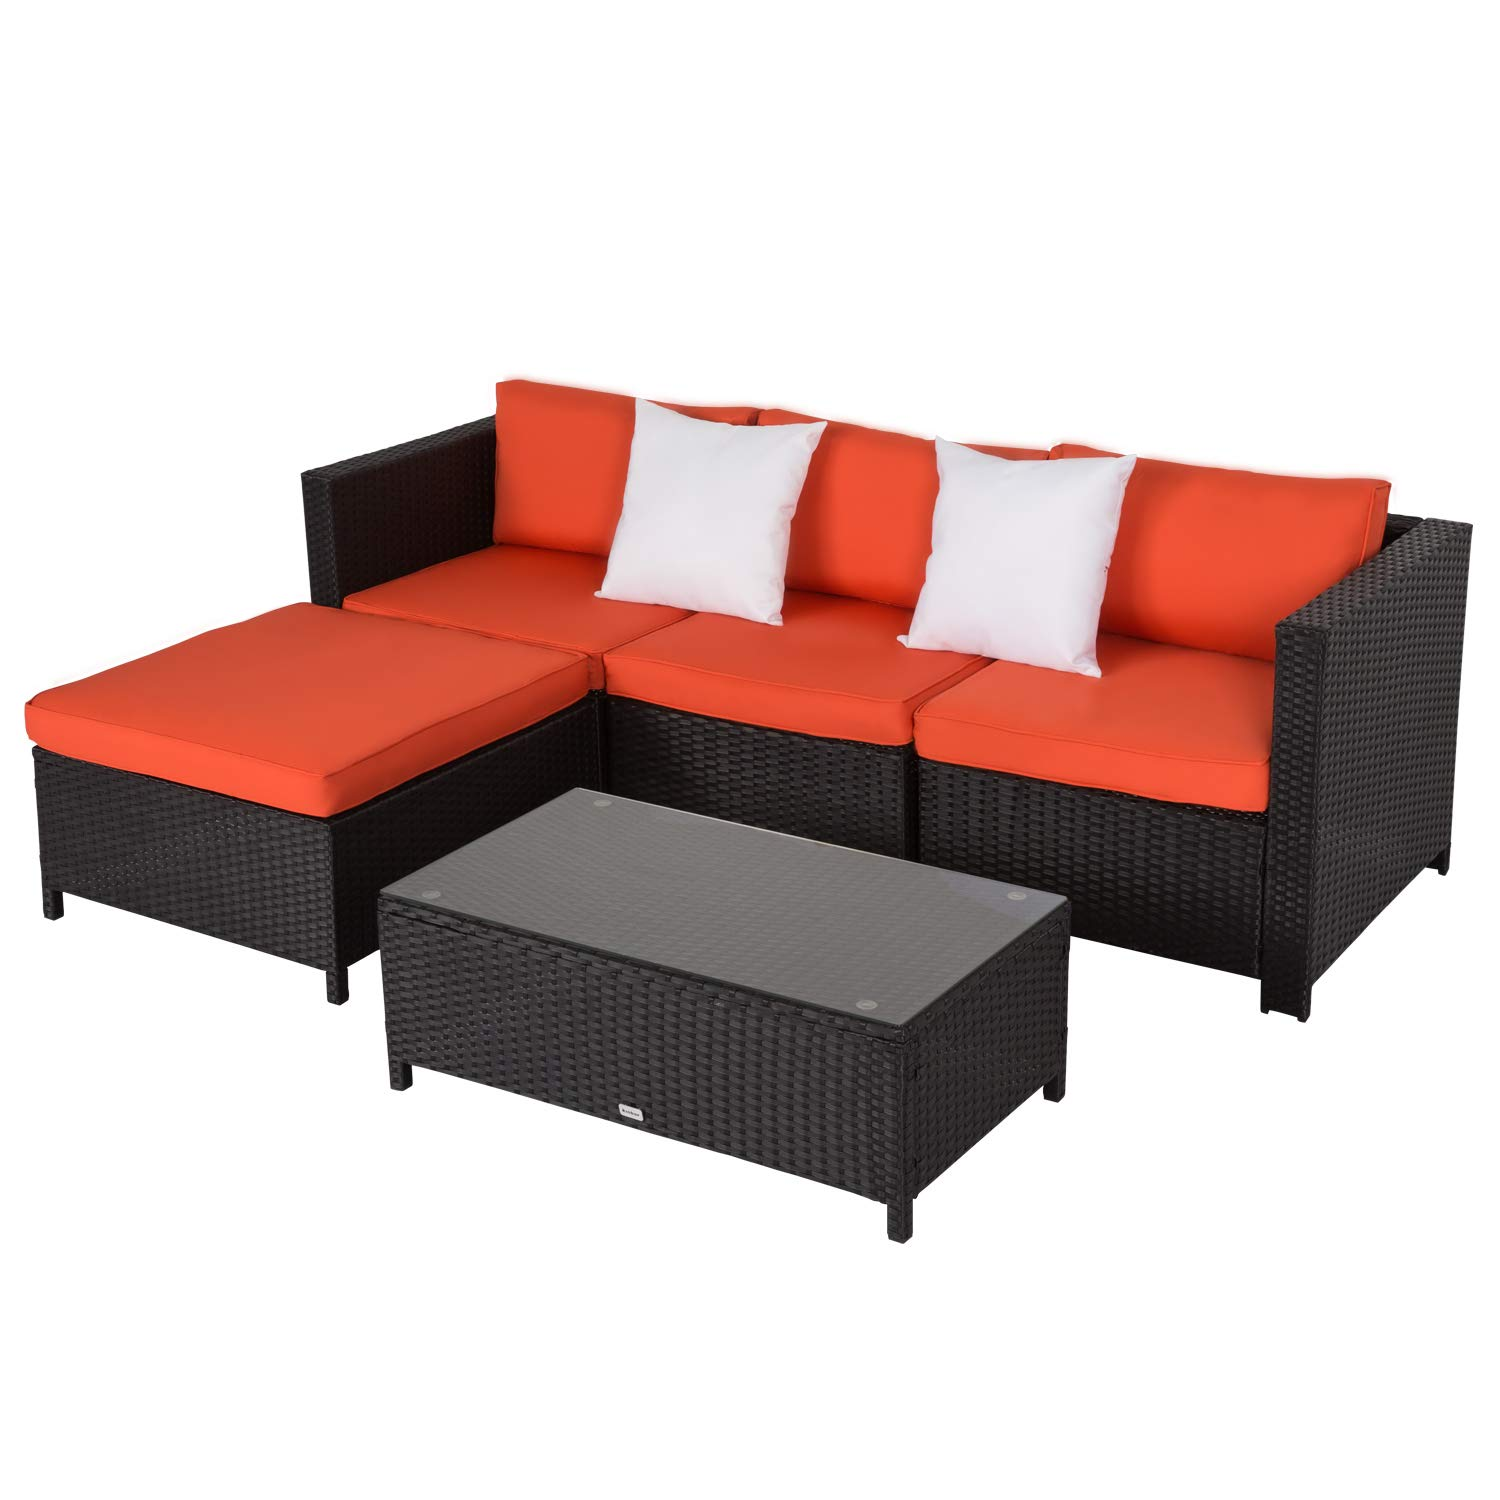 Kinbor Outdoor Wicker PE Rattan Wicker Furniture with Orange Seat Cuhsion and 2 White Pillows